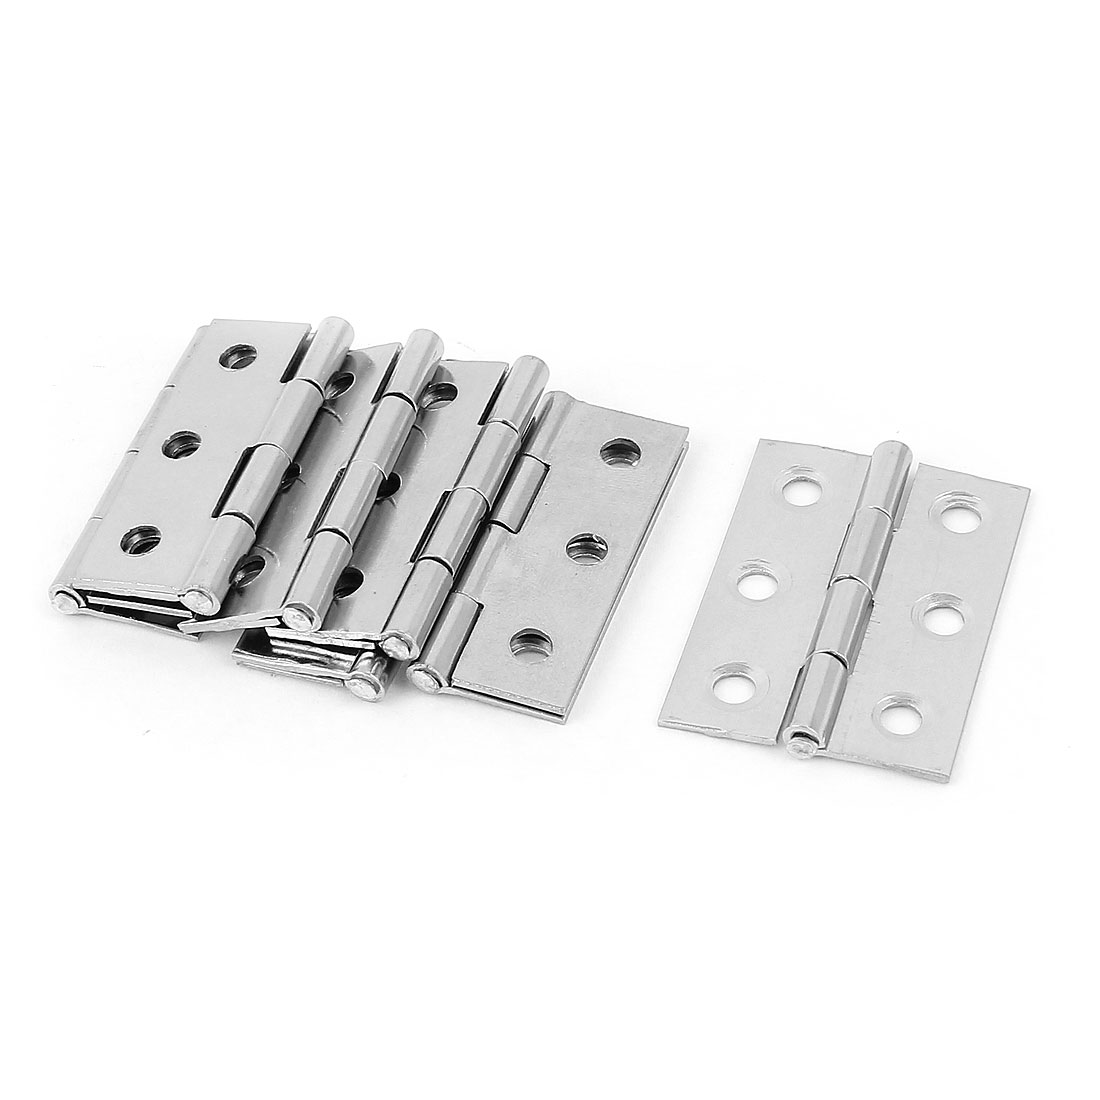 "7 Pcs 1.7"" x 1.2"" Stainless Steel Folding Furniture Cabinet Door Butt Hinge"